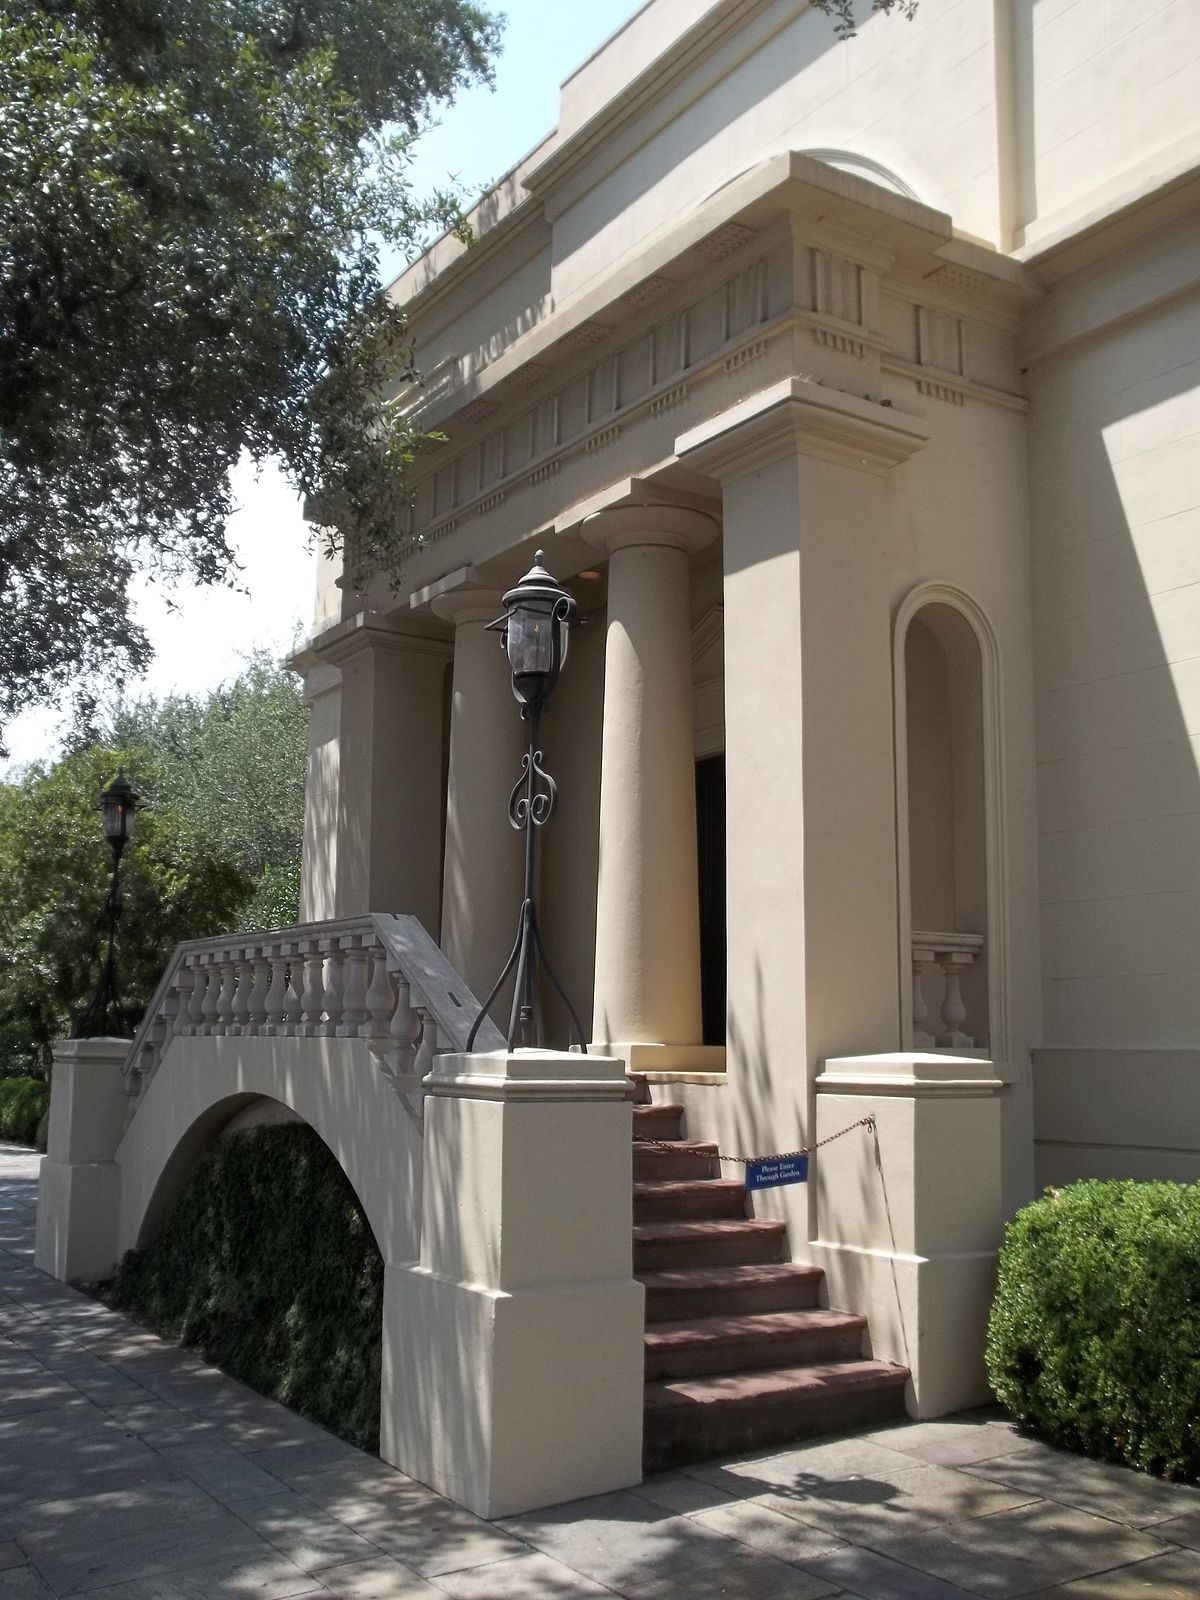 William Scarbrough House Wikipedia